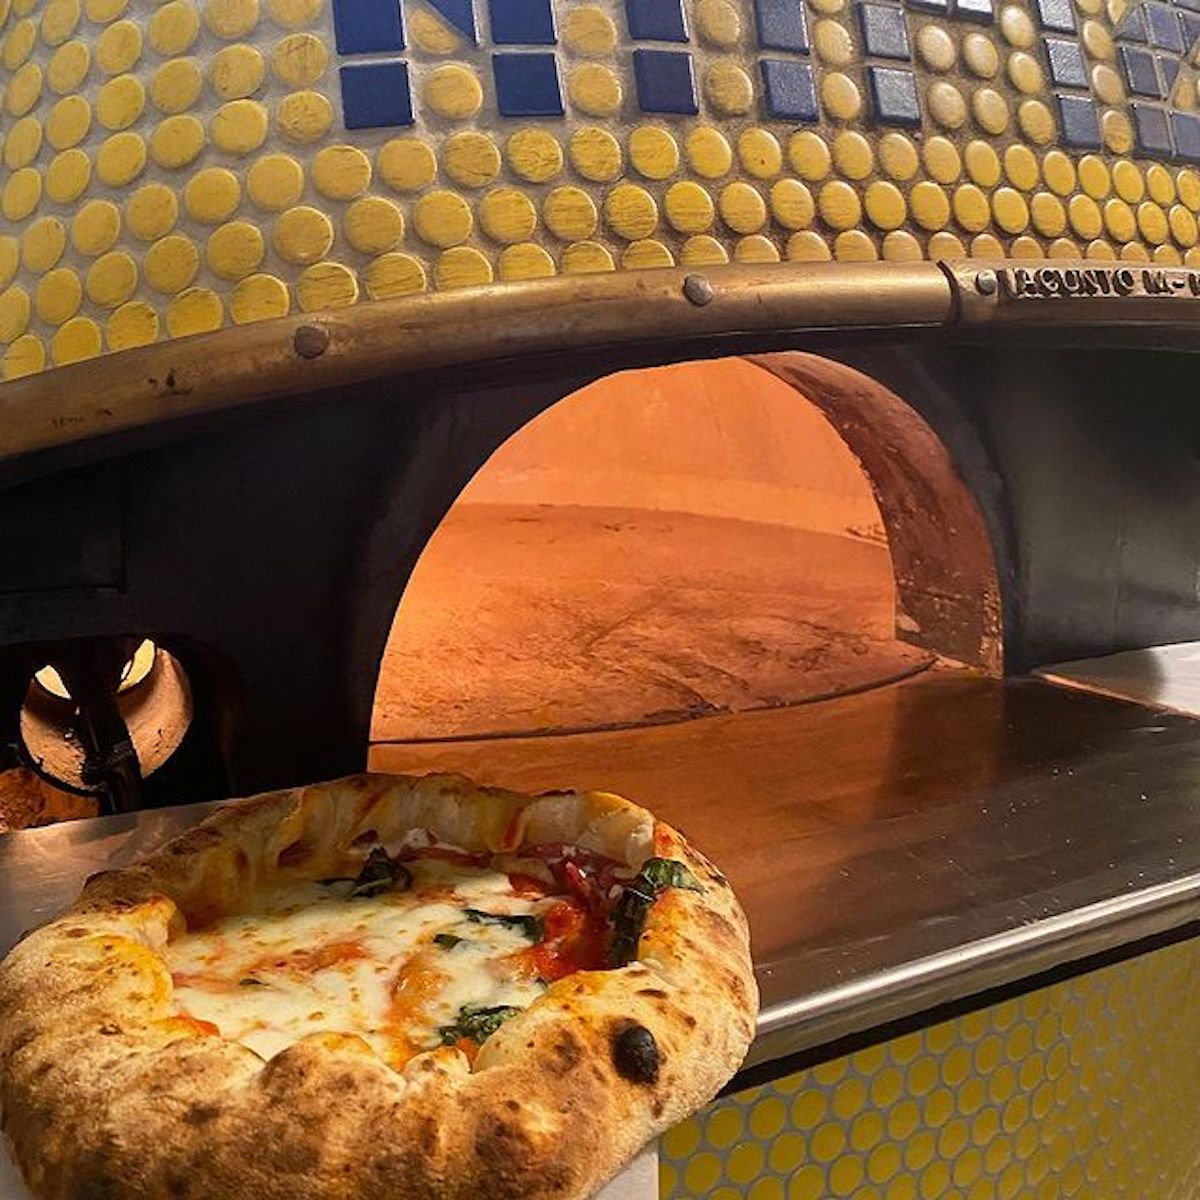 Na' Pizza to Bring Wood-Fired Slices to the Marina District